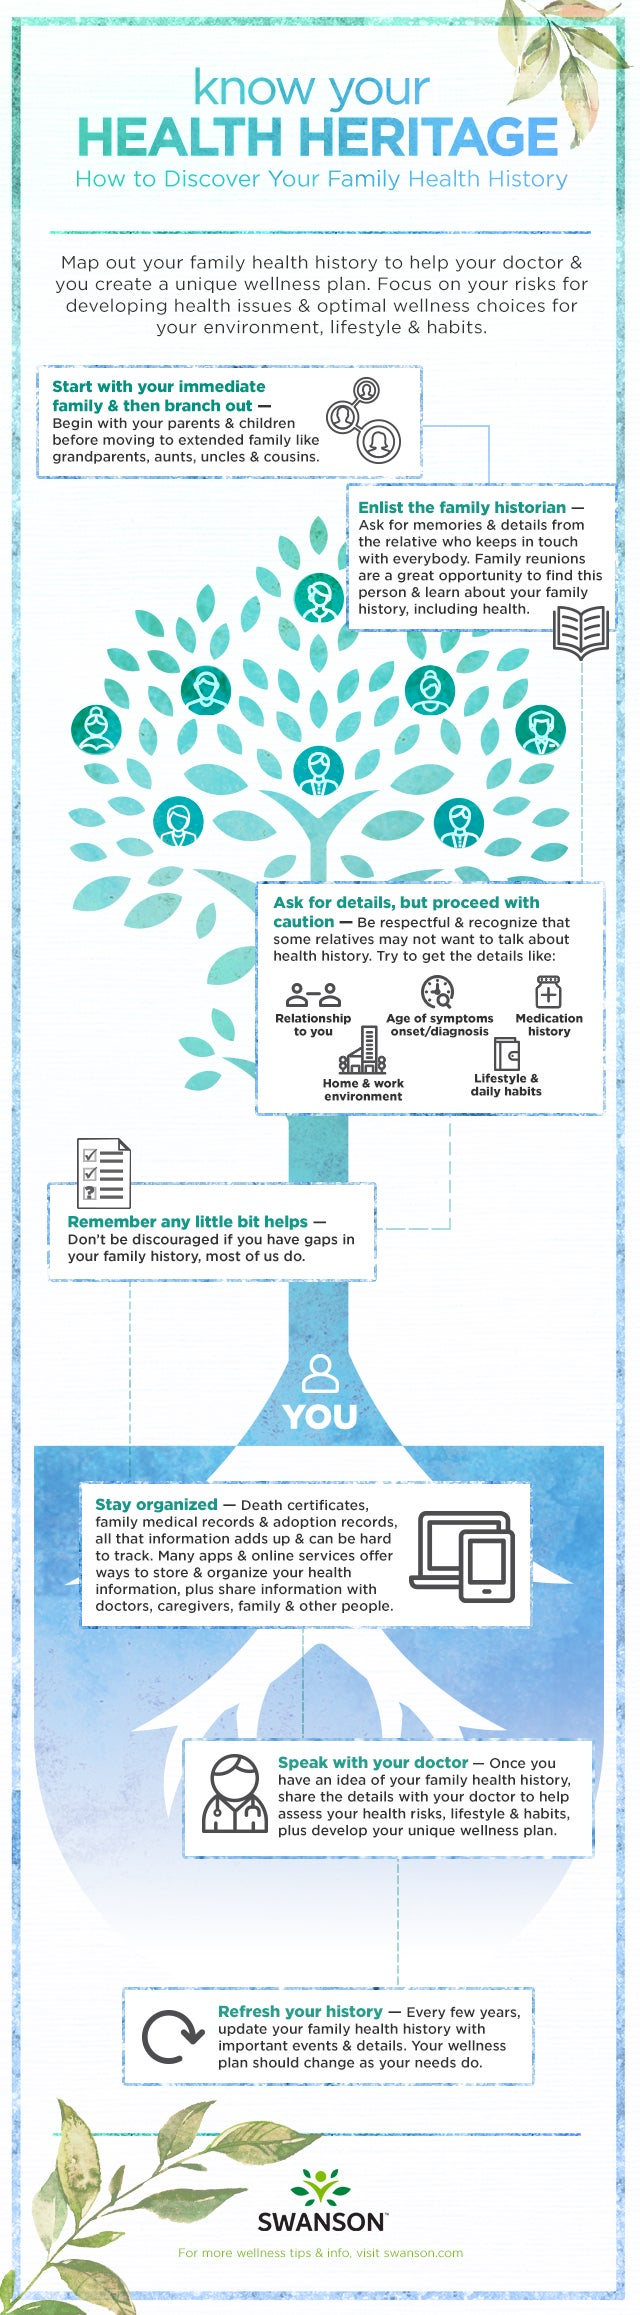 Know Your Health Heritage - How to Discover Family Health History by Swanson Health